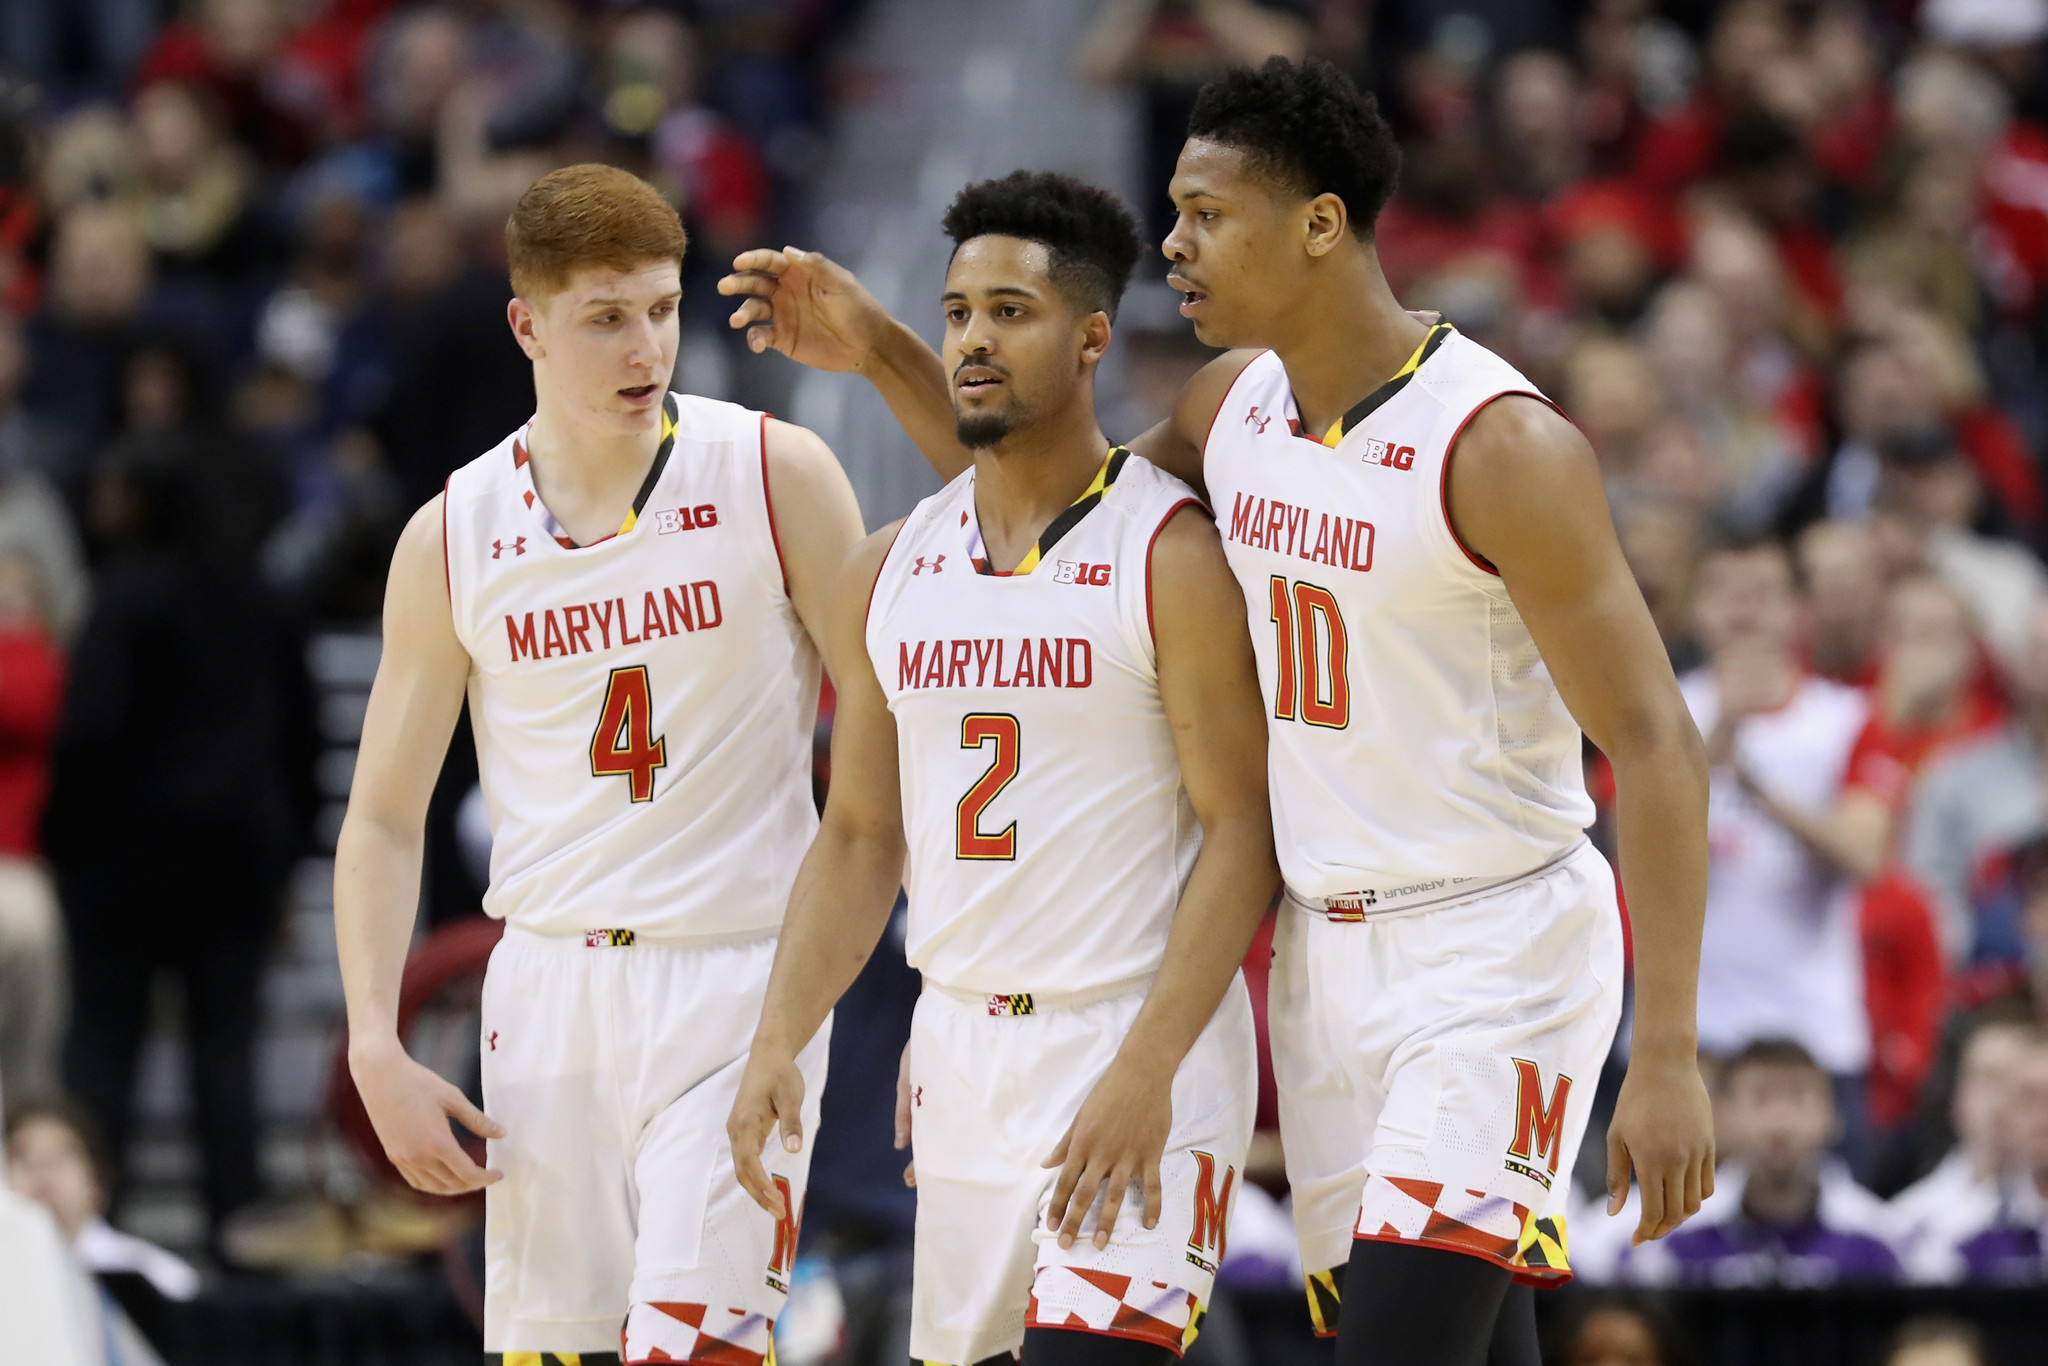 Maryland basketball a surprising No. 6 seed in NCAA Tournament  will play  Xavier on Thursday at 6 50 p.m. - Baltimore Sun d81d5cb9f